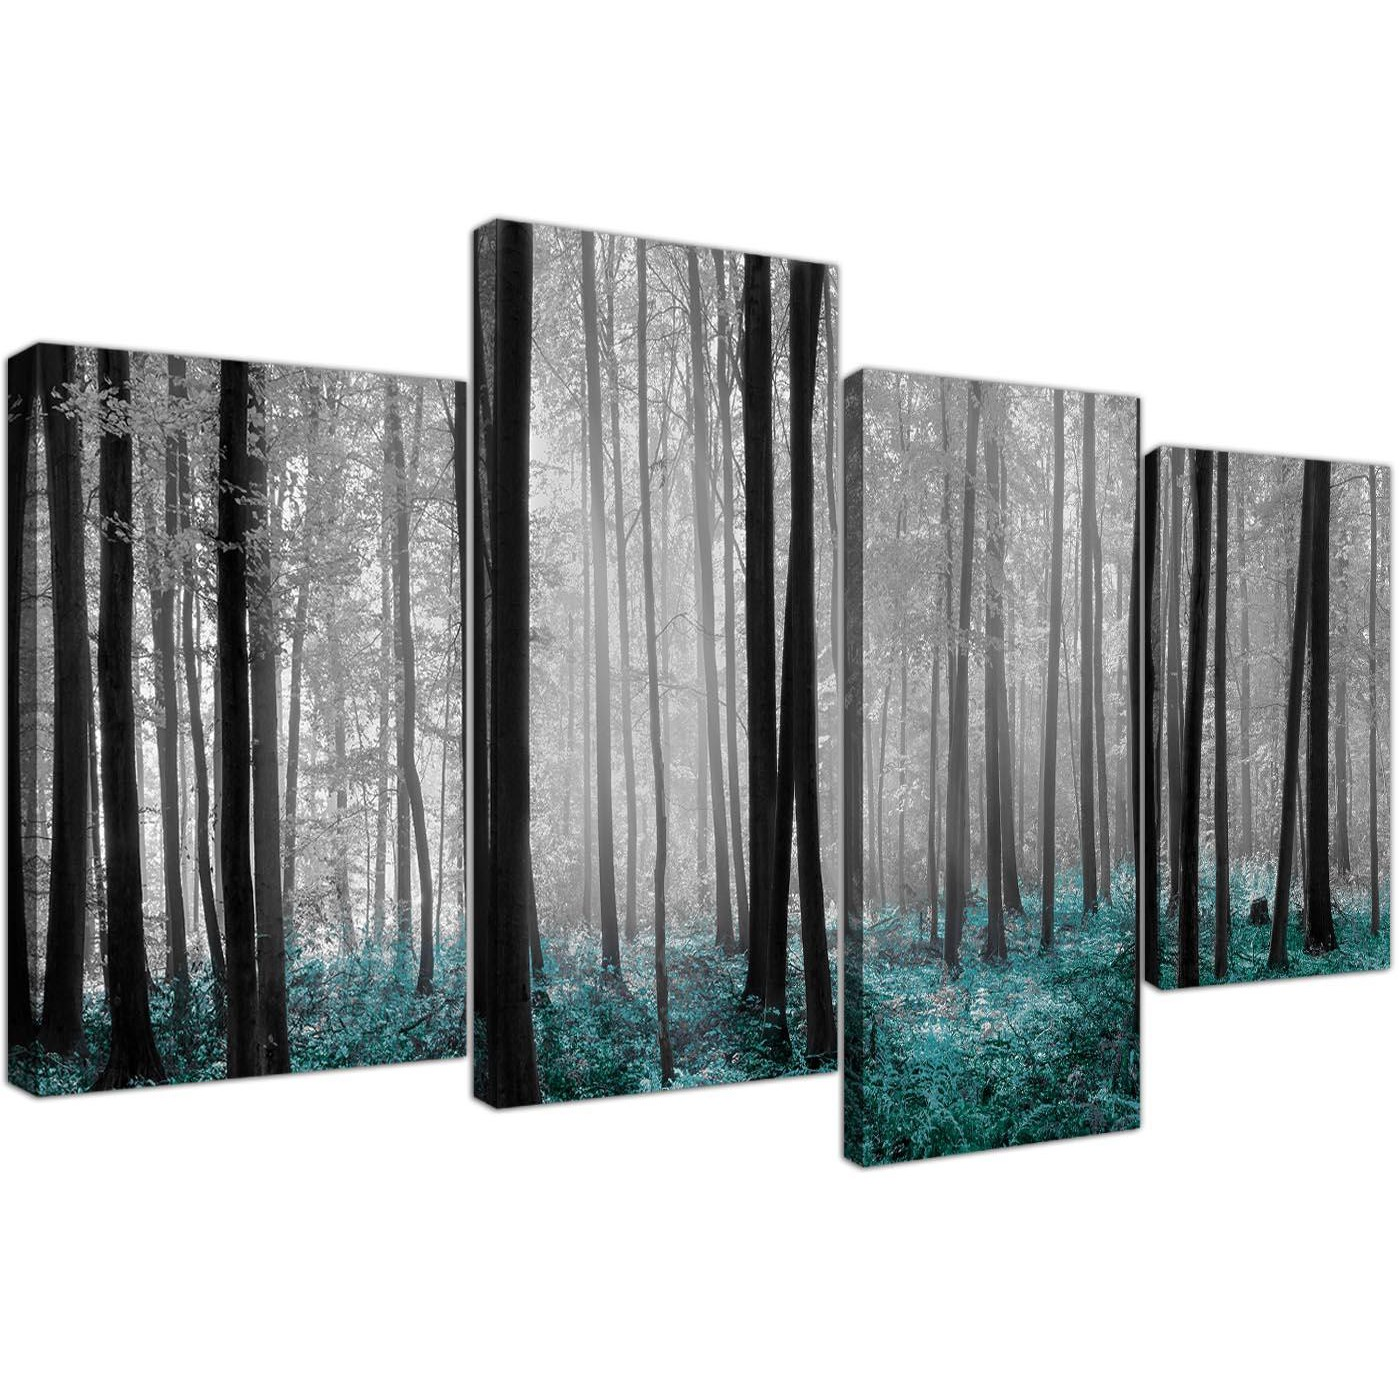 black white teal forest trees canvas wall art print. Black Bedroom Furniture Sets. Home Design Ideas